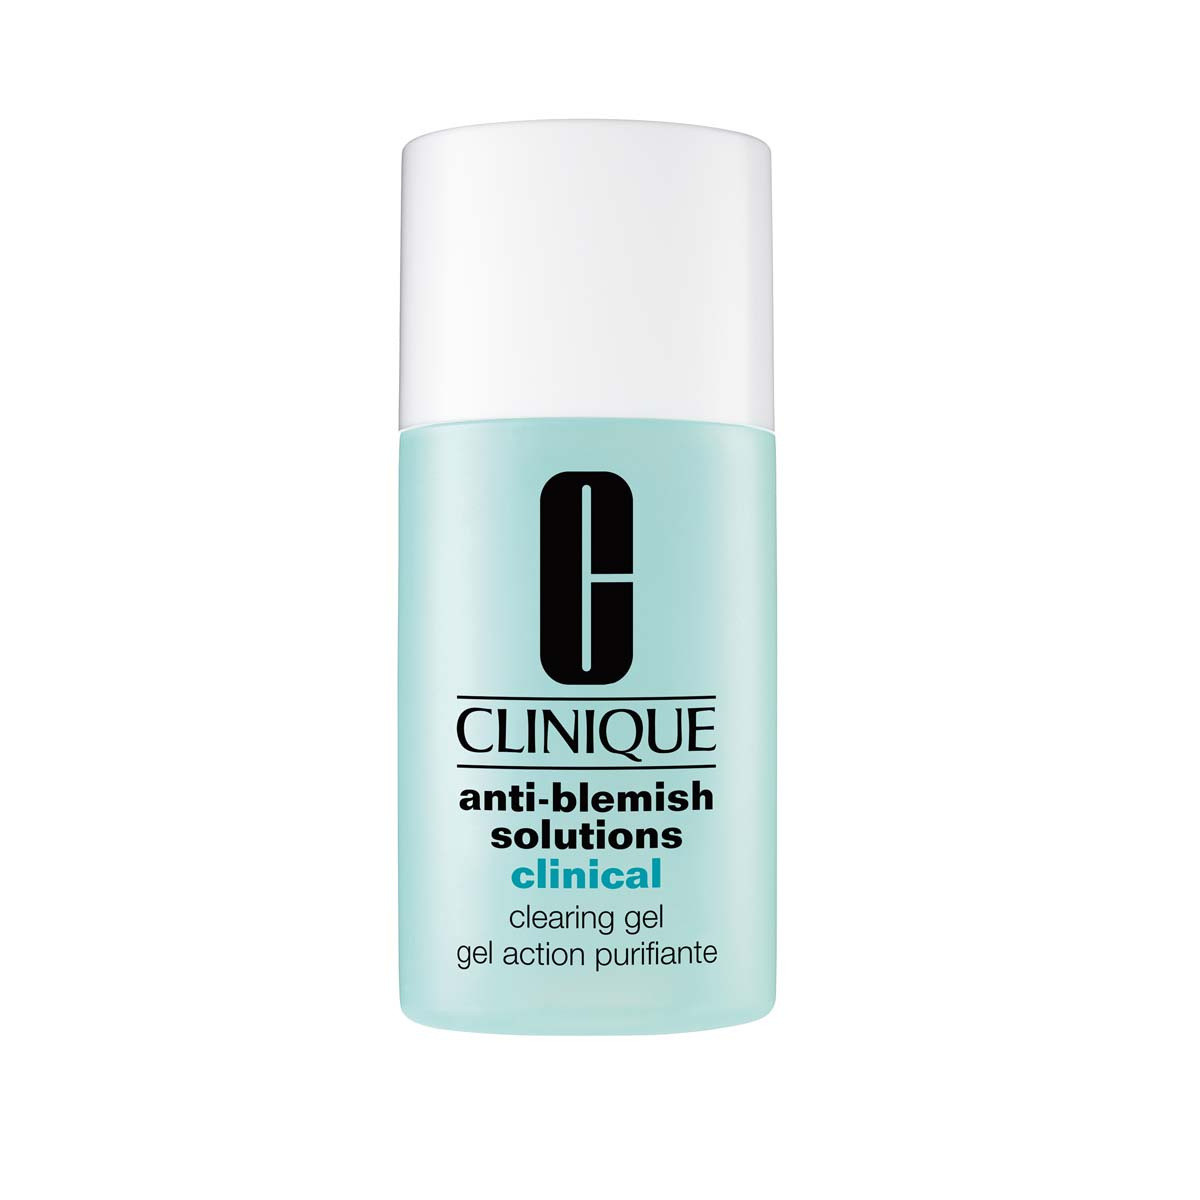 Clinique anti-blemish solutions clinical clearing gel 30 ml, Verde, large image number 0